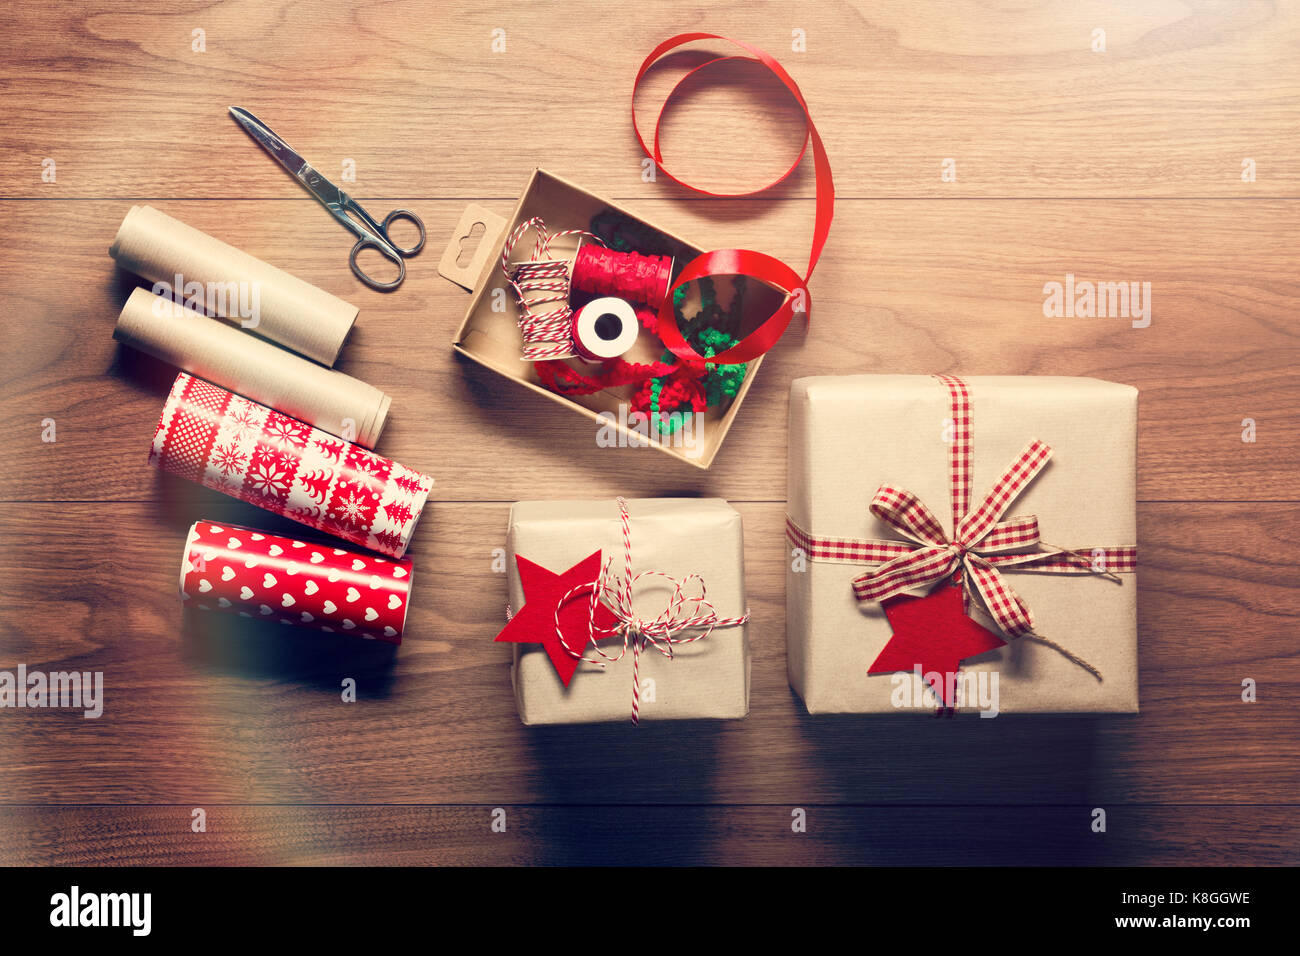 Beautiful retro christmas gift wrapping, xmas concept, DIY desk view from above background - Stock Image